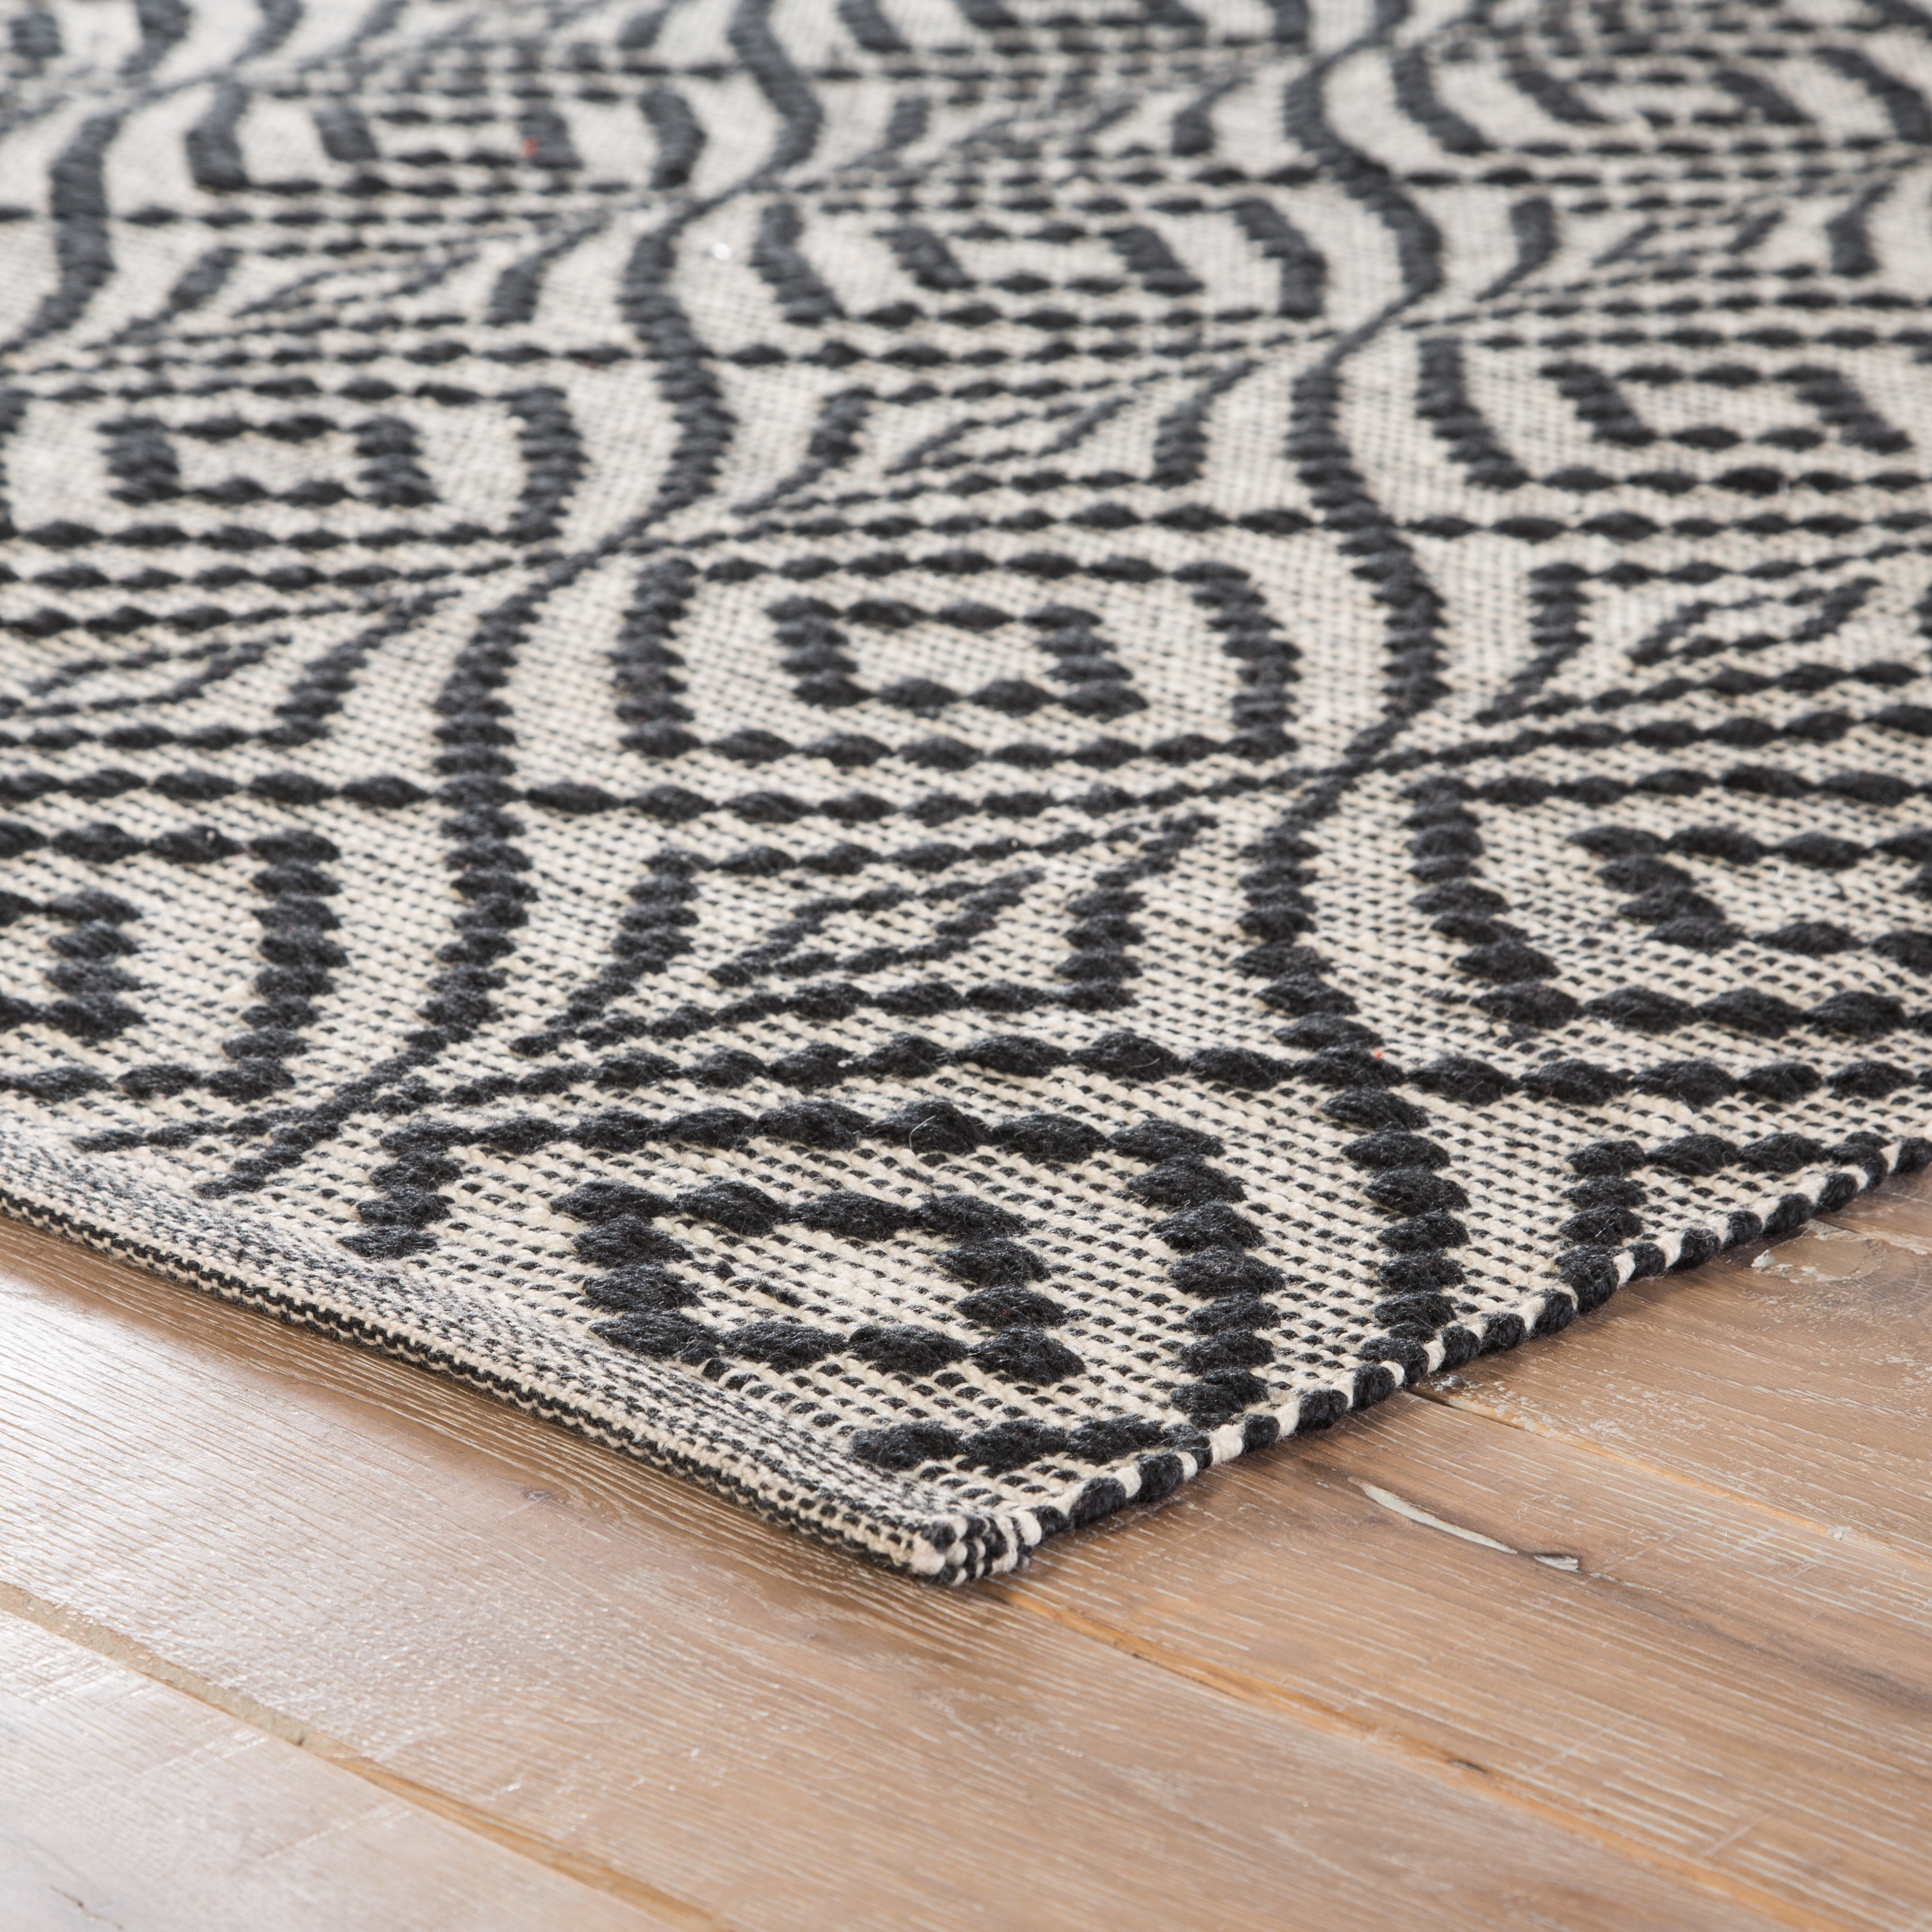 Arbor Handmade Trellis Black Cream Area Rug 2 X 3 Free Shipping On Orders Over 45 24337626